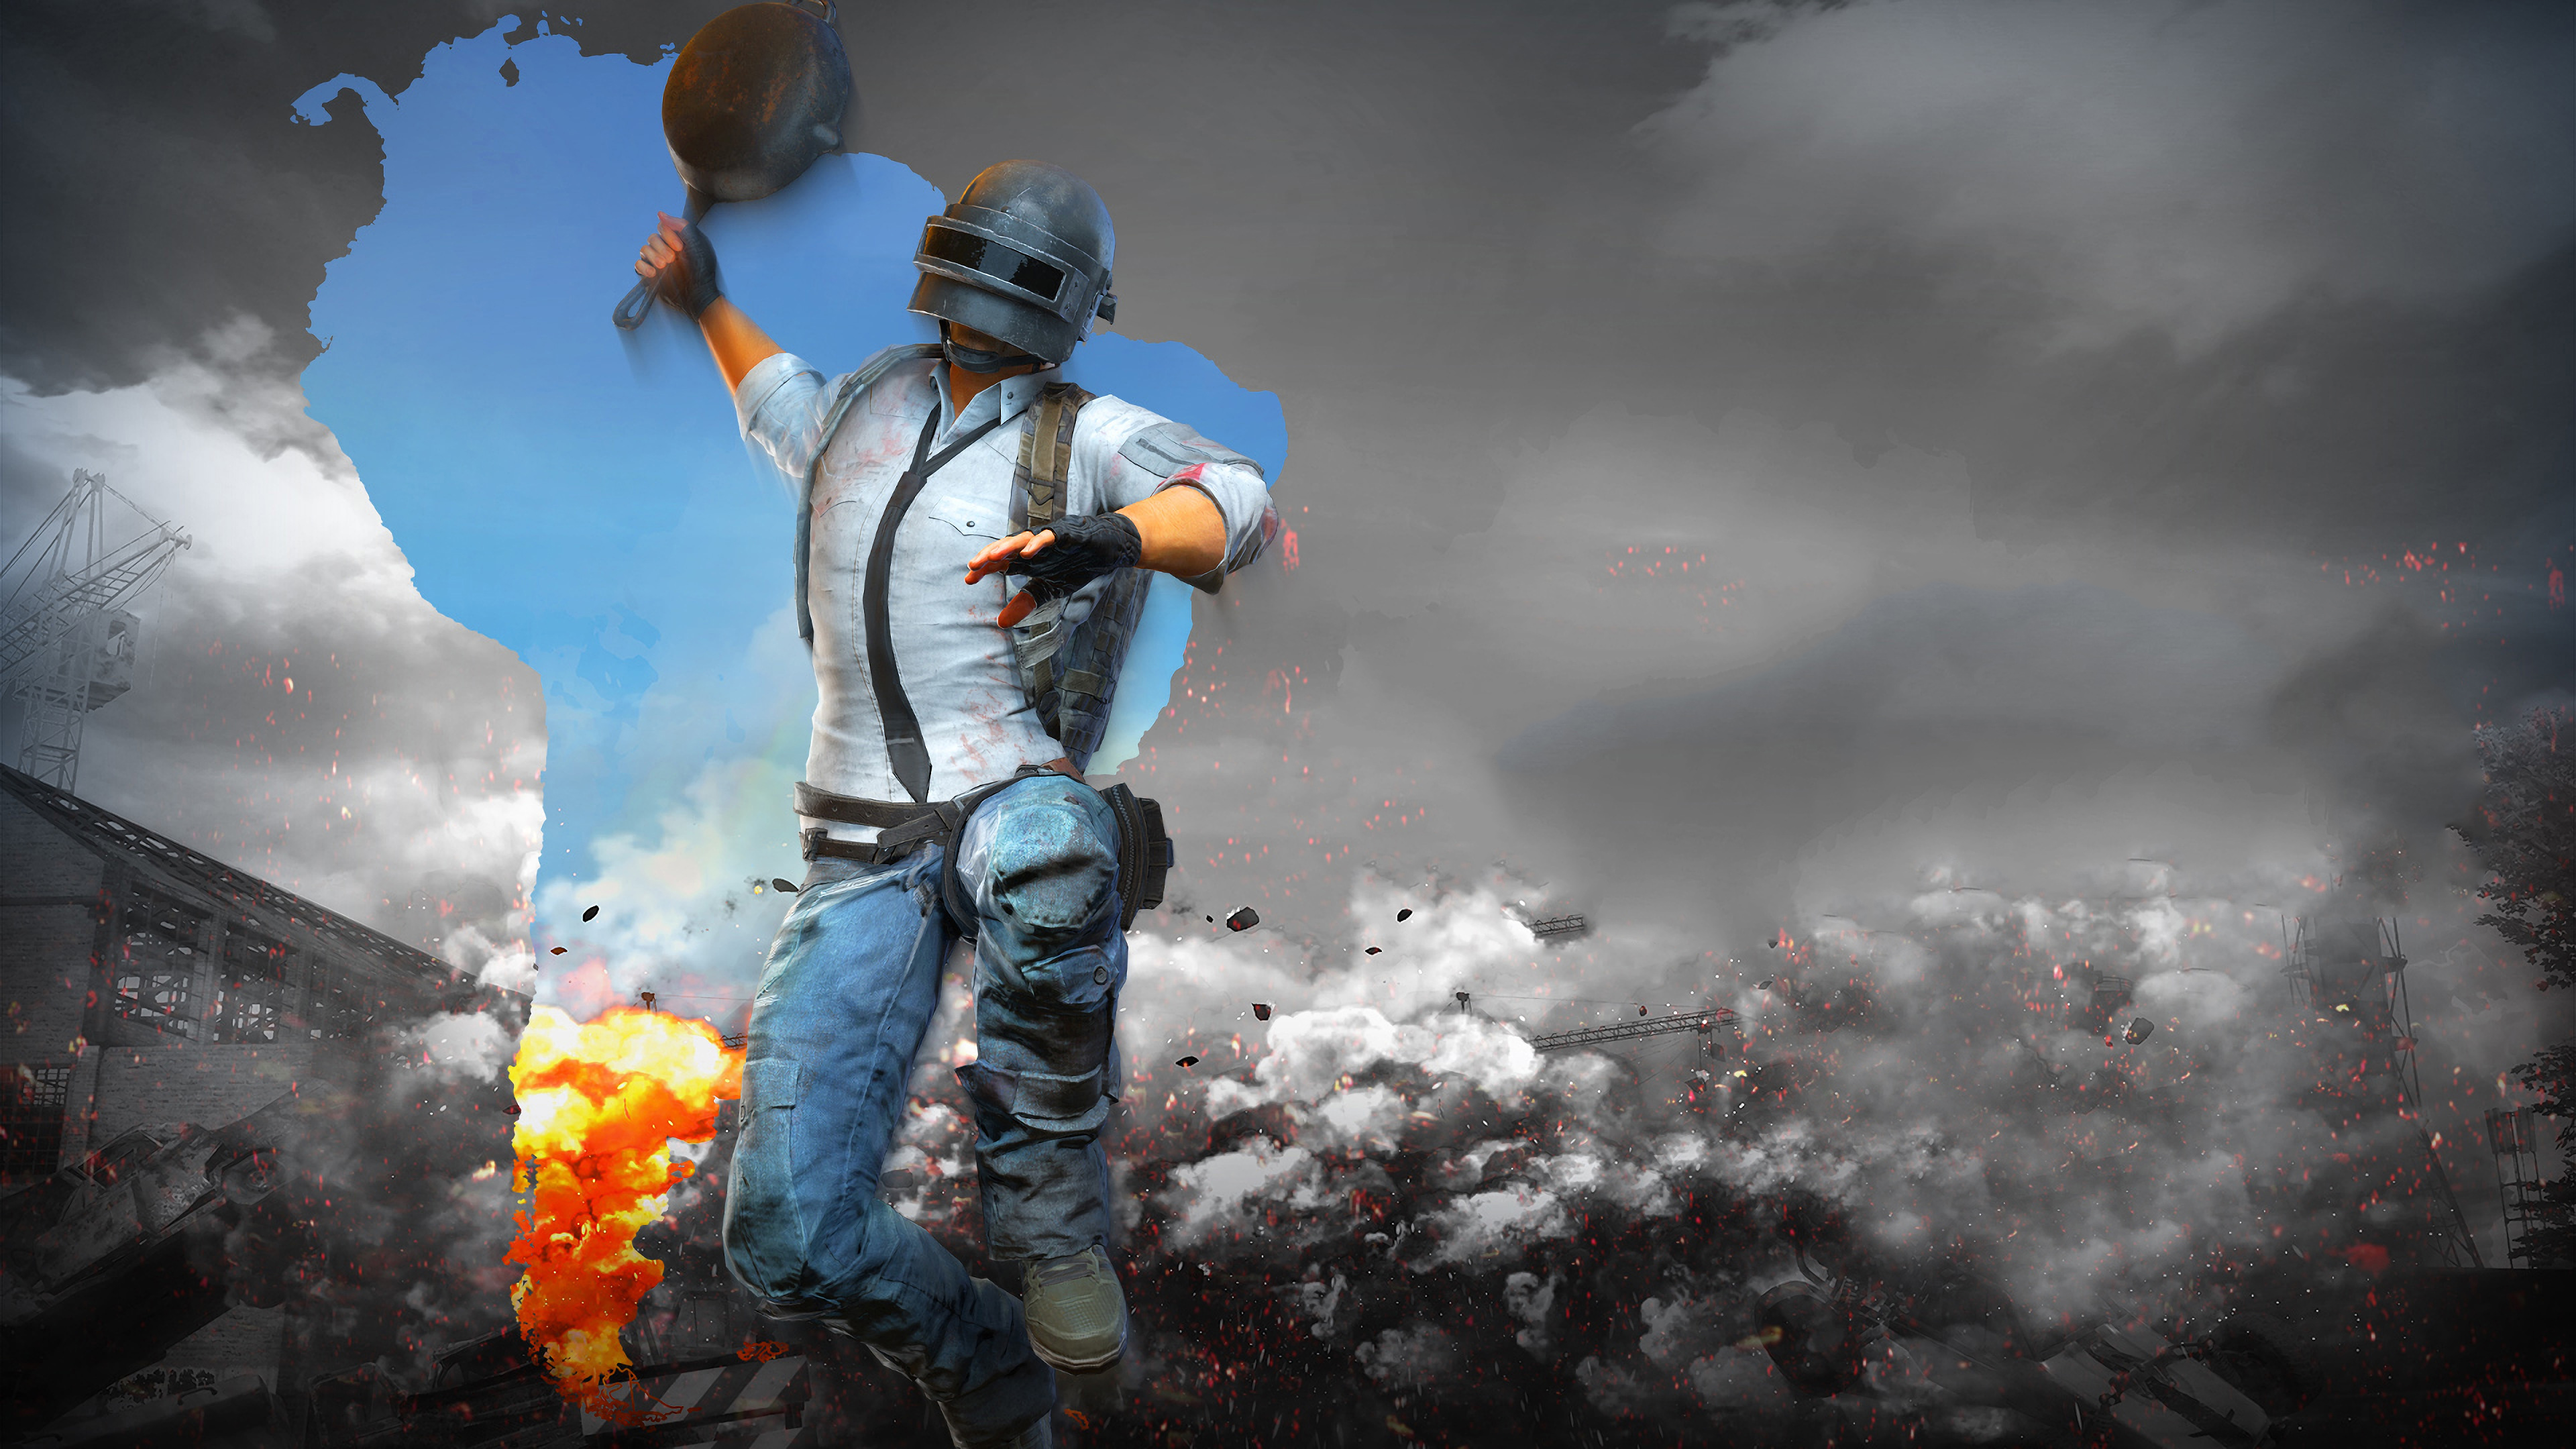 1920x1080 PUBG Helmet Man With Pan 4k Laptop Full HD 1080P